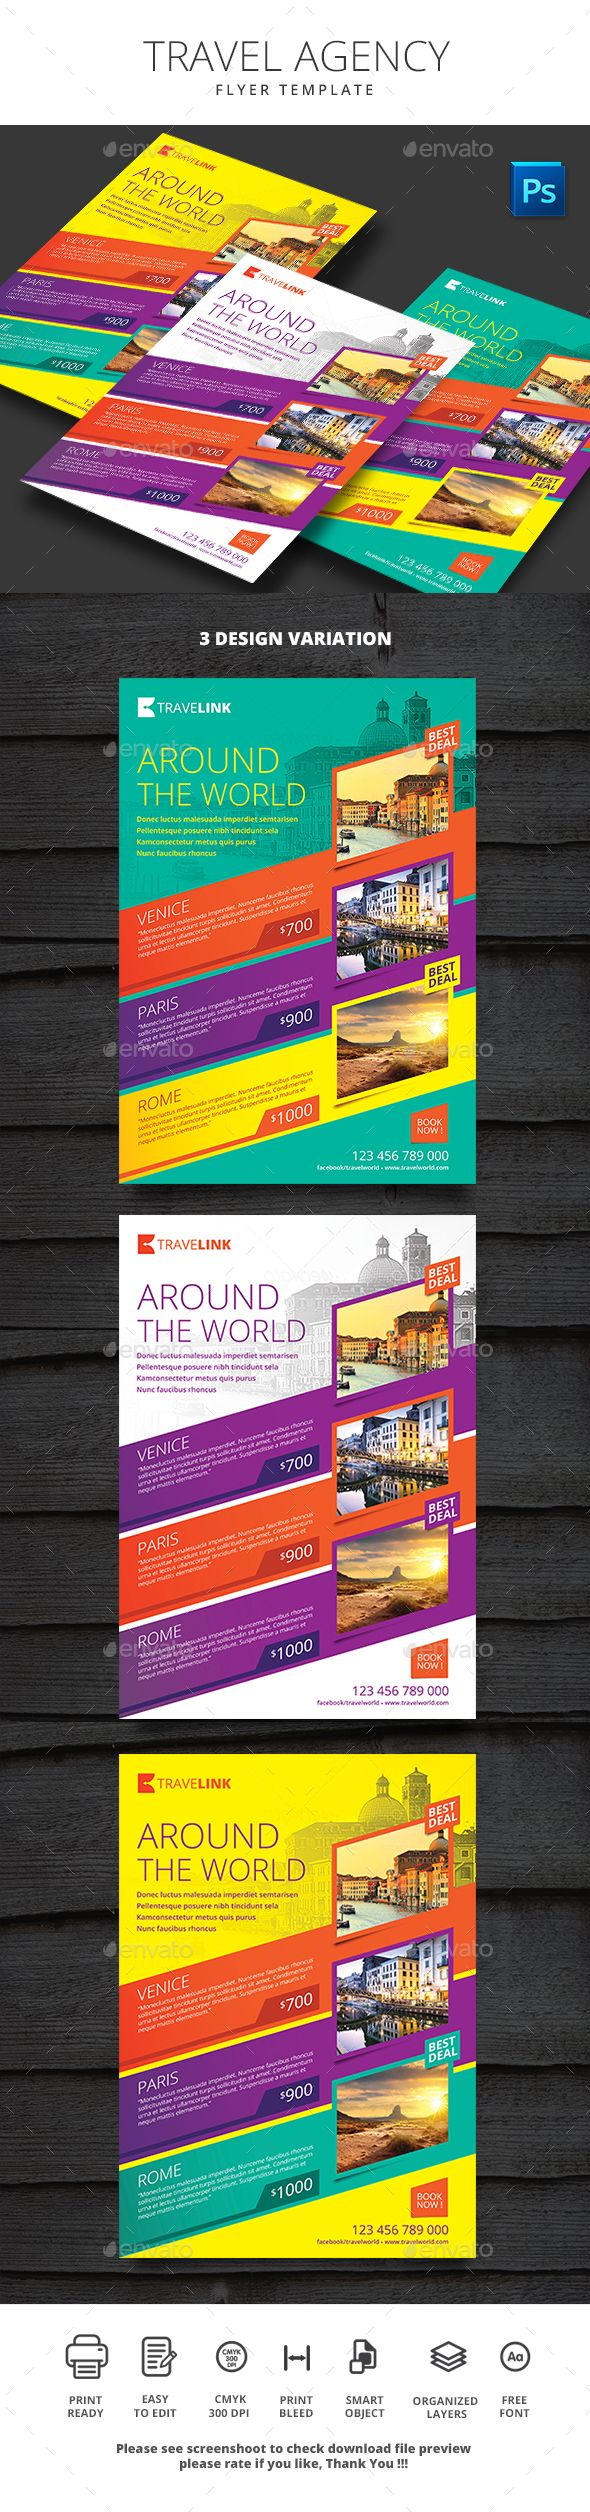 Travel Agency Flyer Minimalist - Holidays Event Flyer Template PSD. Download here: http://graphicriver.net/item/travel-agency-flyer-minimalist/16703821?s_rank=112&ref=yinkira